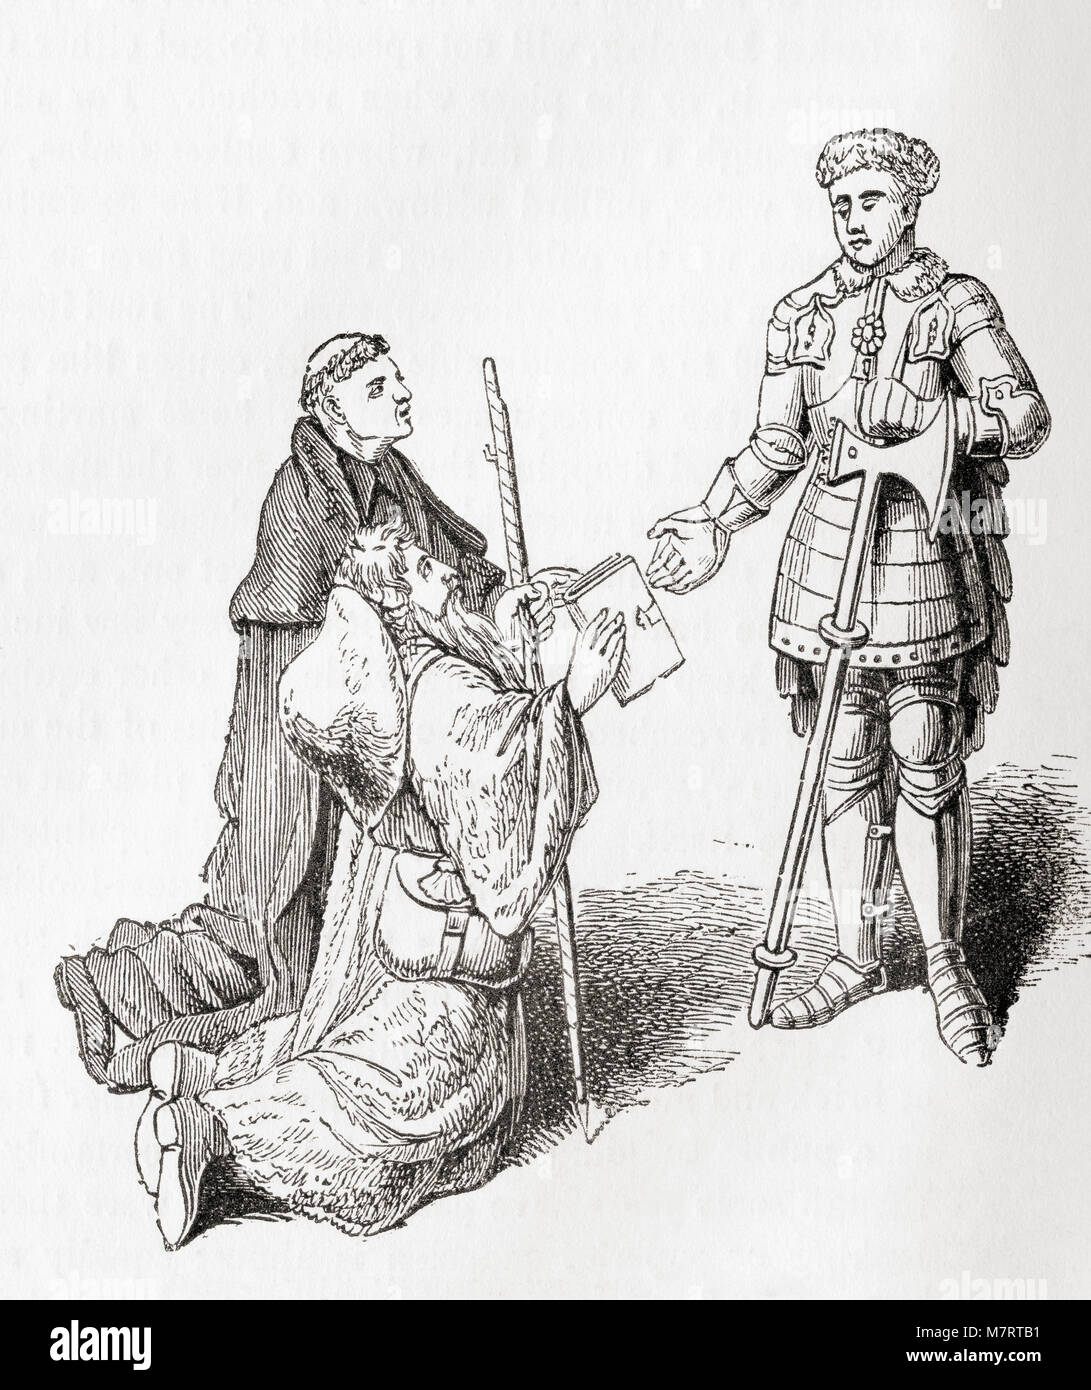 Lydgate presenting one of his poems to the Earl of Warwick.  John Lydgate of Bury,c. 1370 – c. 1451.  English monk - Stock Image